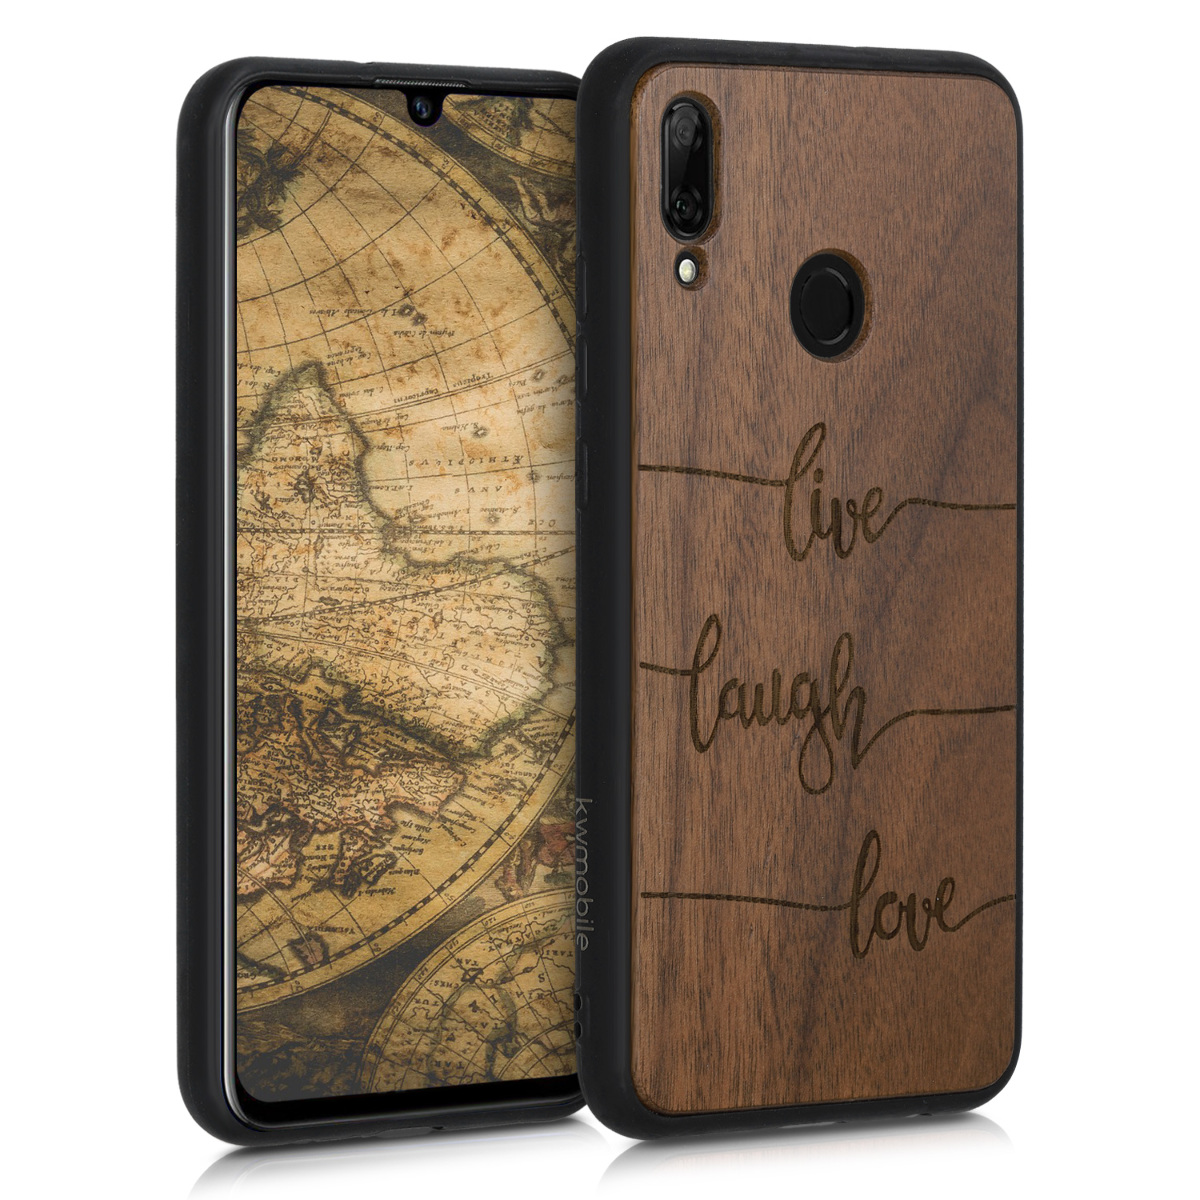 KW Σκληρή Ξύλινη Θήκη με TPU Bumper Huawei P Smart 2019 - Live, Laugh, Love (48117.16)